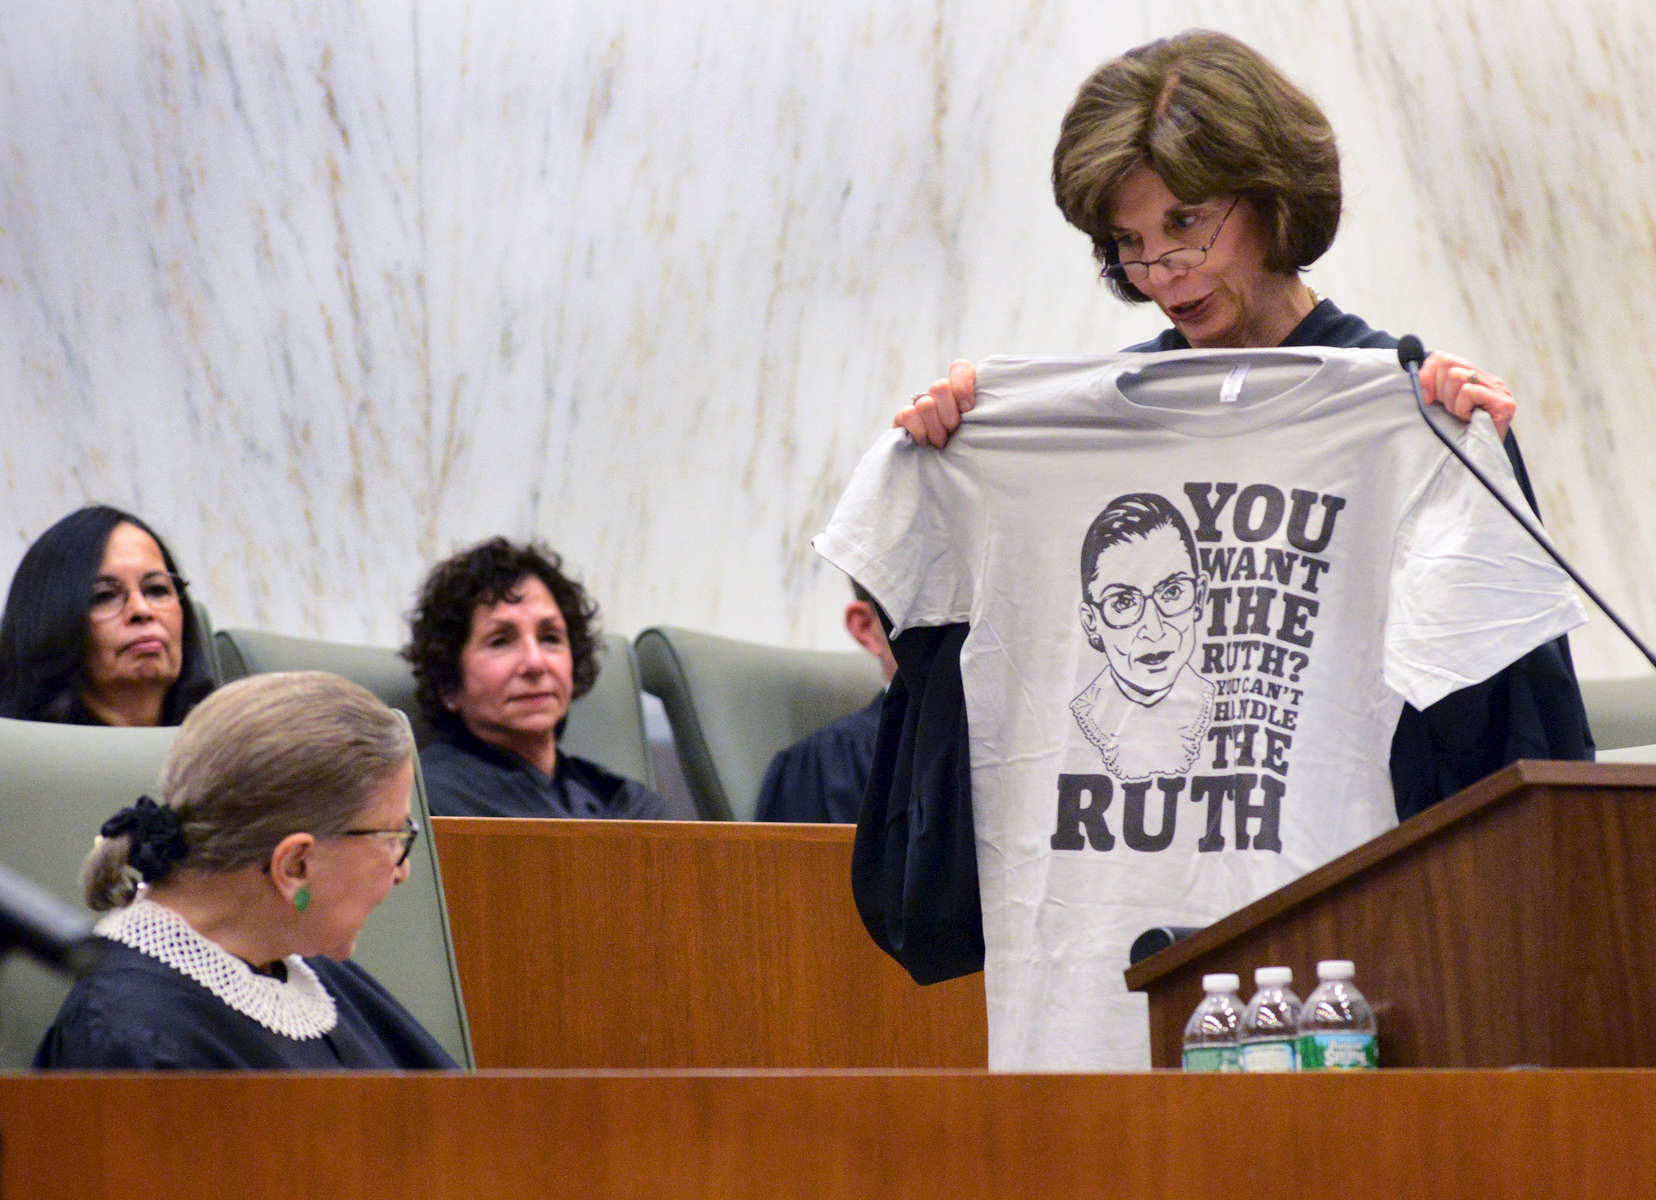 Eastern District Chief Judge Carol Amon presented U. S. Supreme Court Justice Ruth Bader Ginsburg with a T-shirt  - March, 2015